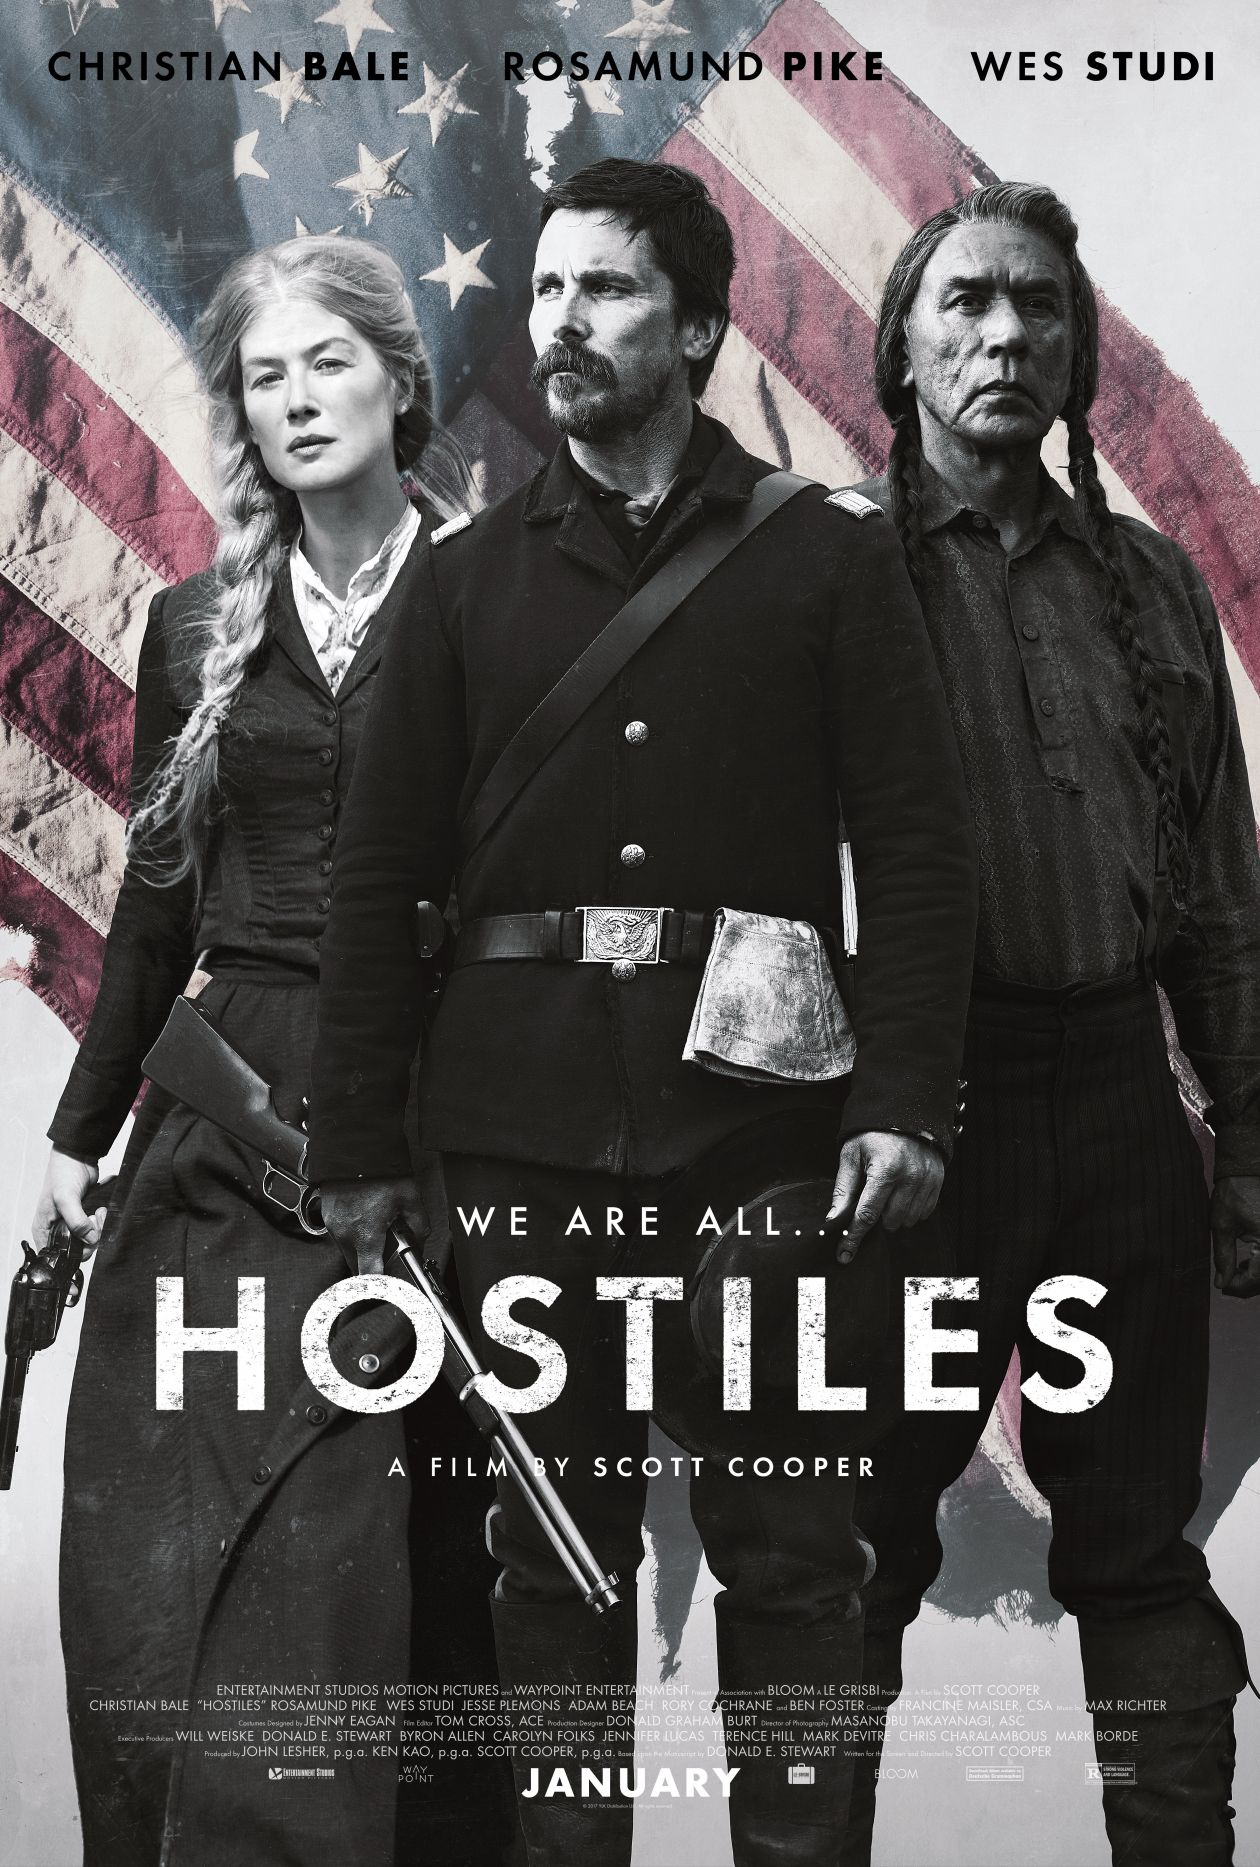 Rosamund Pike actress / Rosalie Quaid / HOSTILES / Scott Cooper 2017 Movie Poster Affiche film